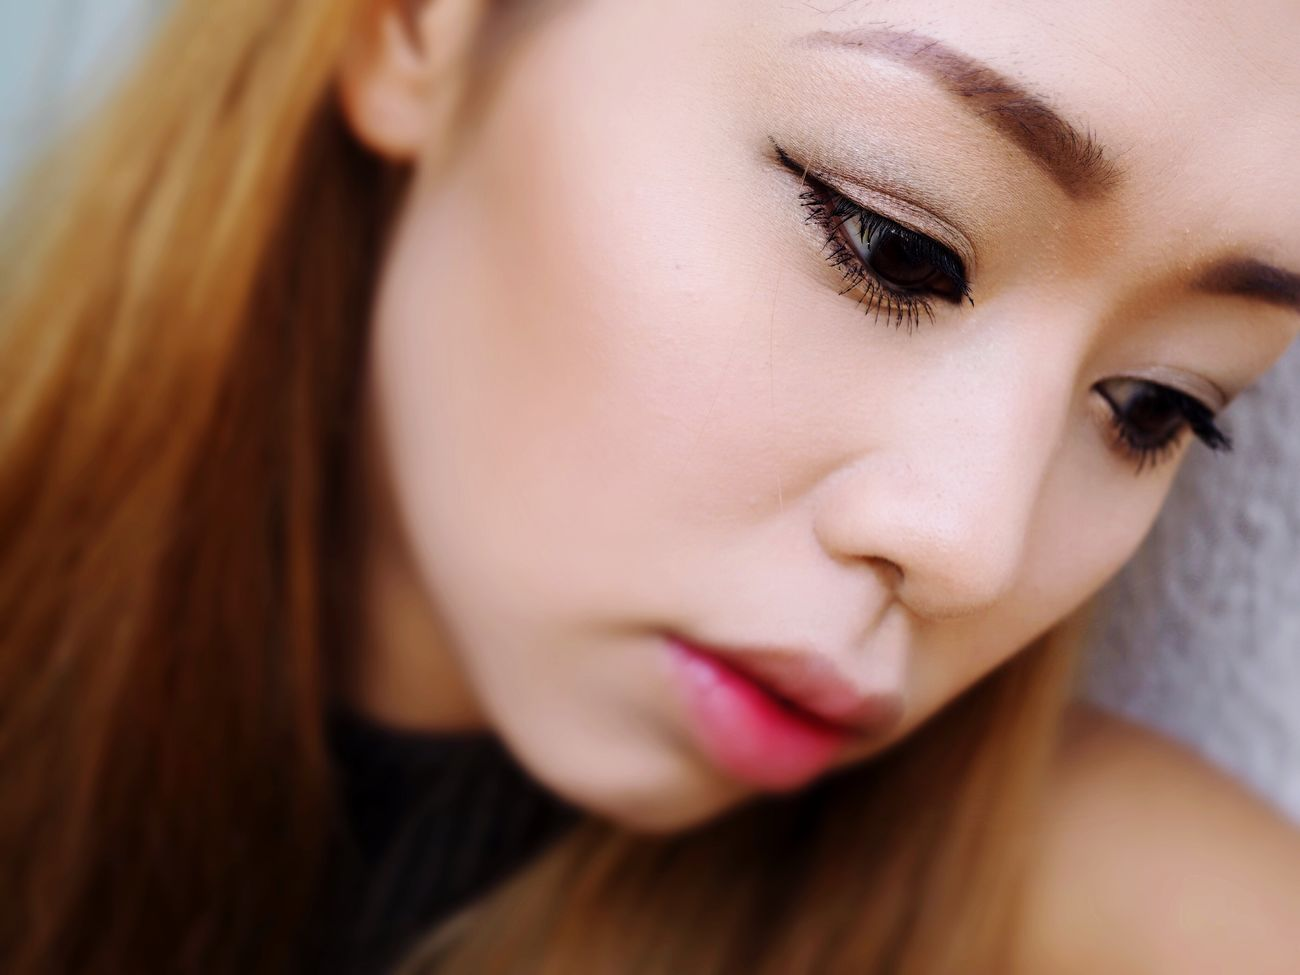 Makeup by me Close-up One Person Real People Make-up Women Human Face People Japanese  Makeupbyme Makeuplovers Makeup ♥ Beauty Looking At Camera Make-up Makeup Photo Makeupartist